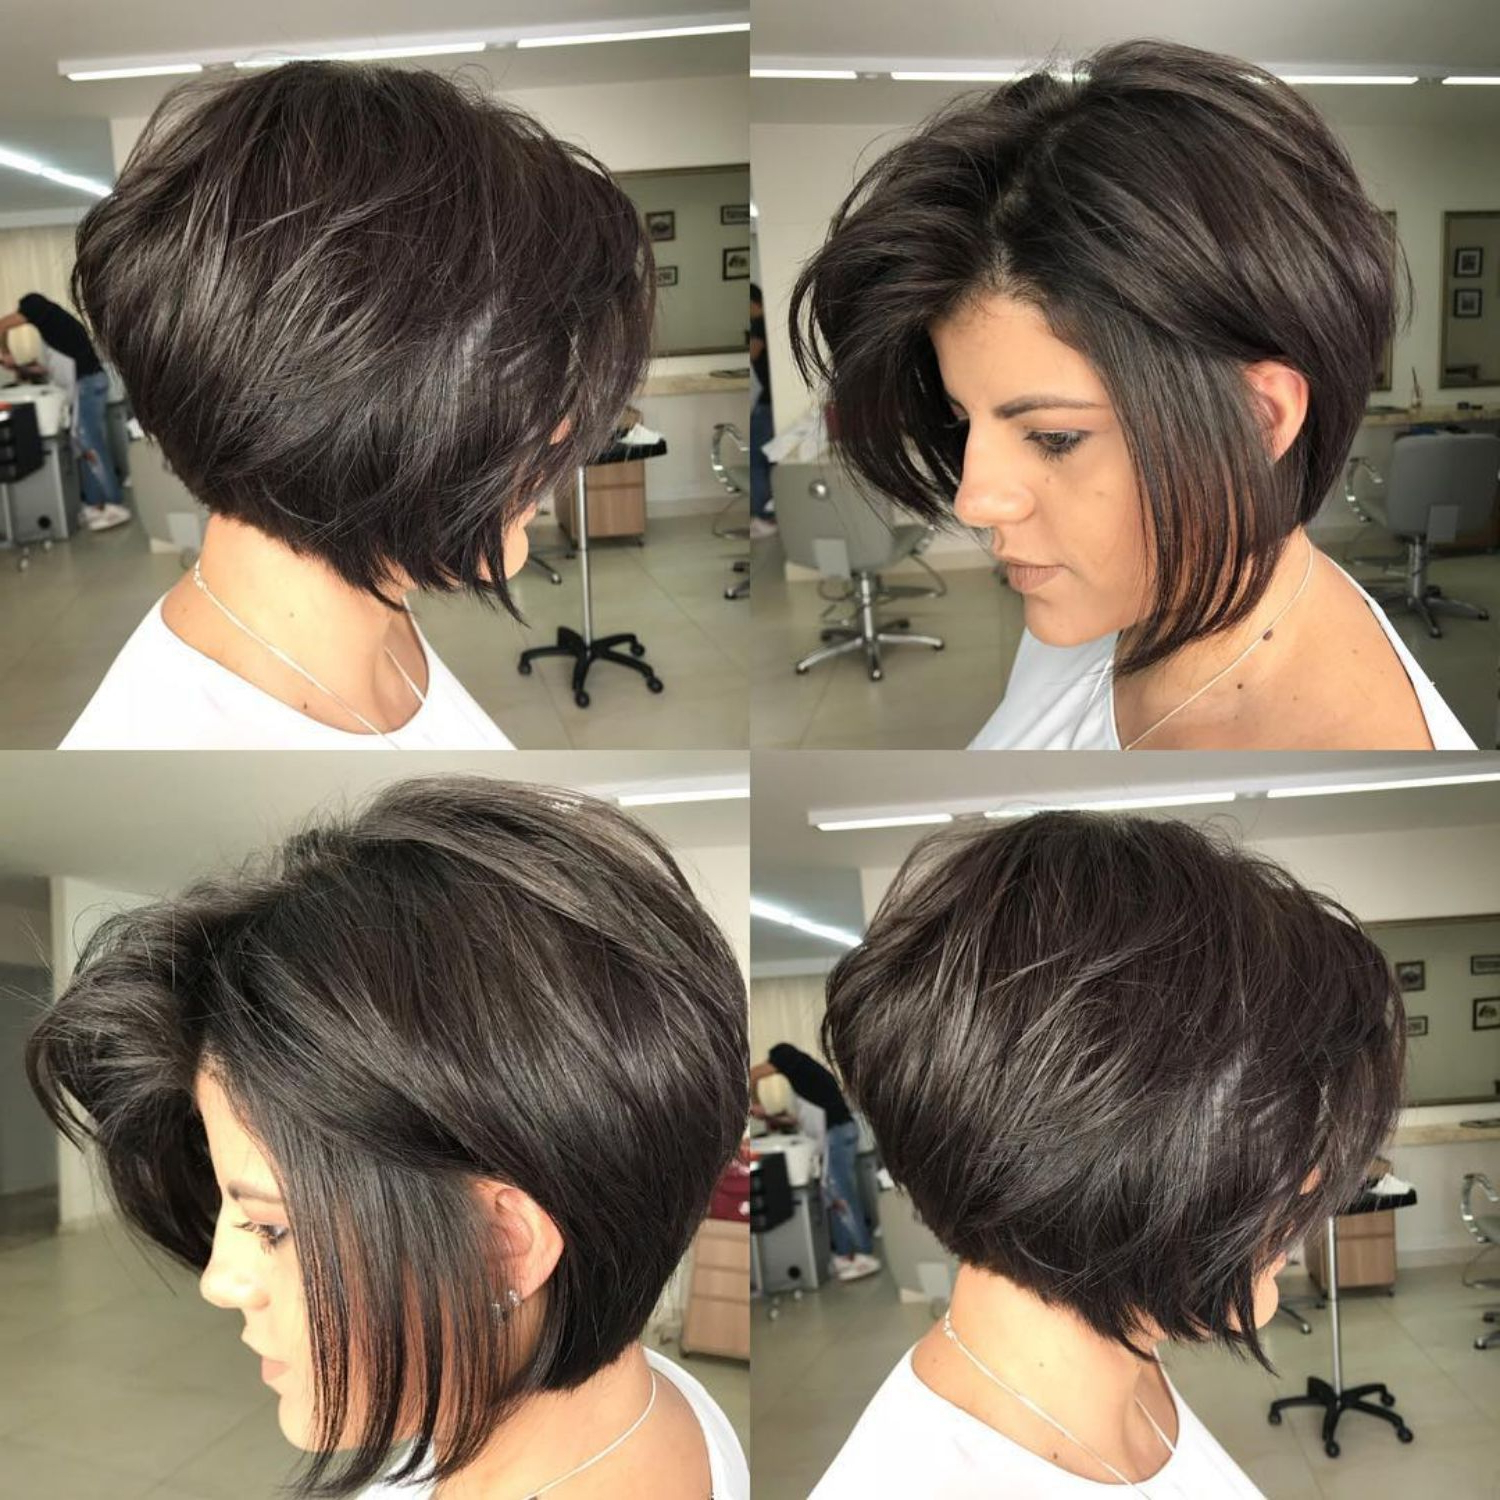 50 Trendy Inverted Bob Haircuts In 2018 | Hair Styles | Pinterest Pertaining To Voluminous Nape Length Inverted Bob Hairstyles (View 14 of 20)